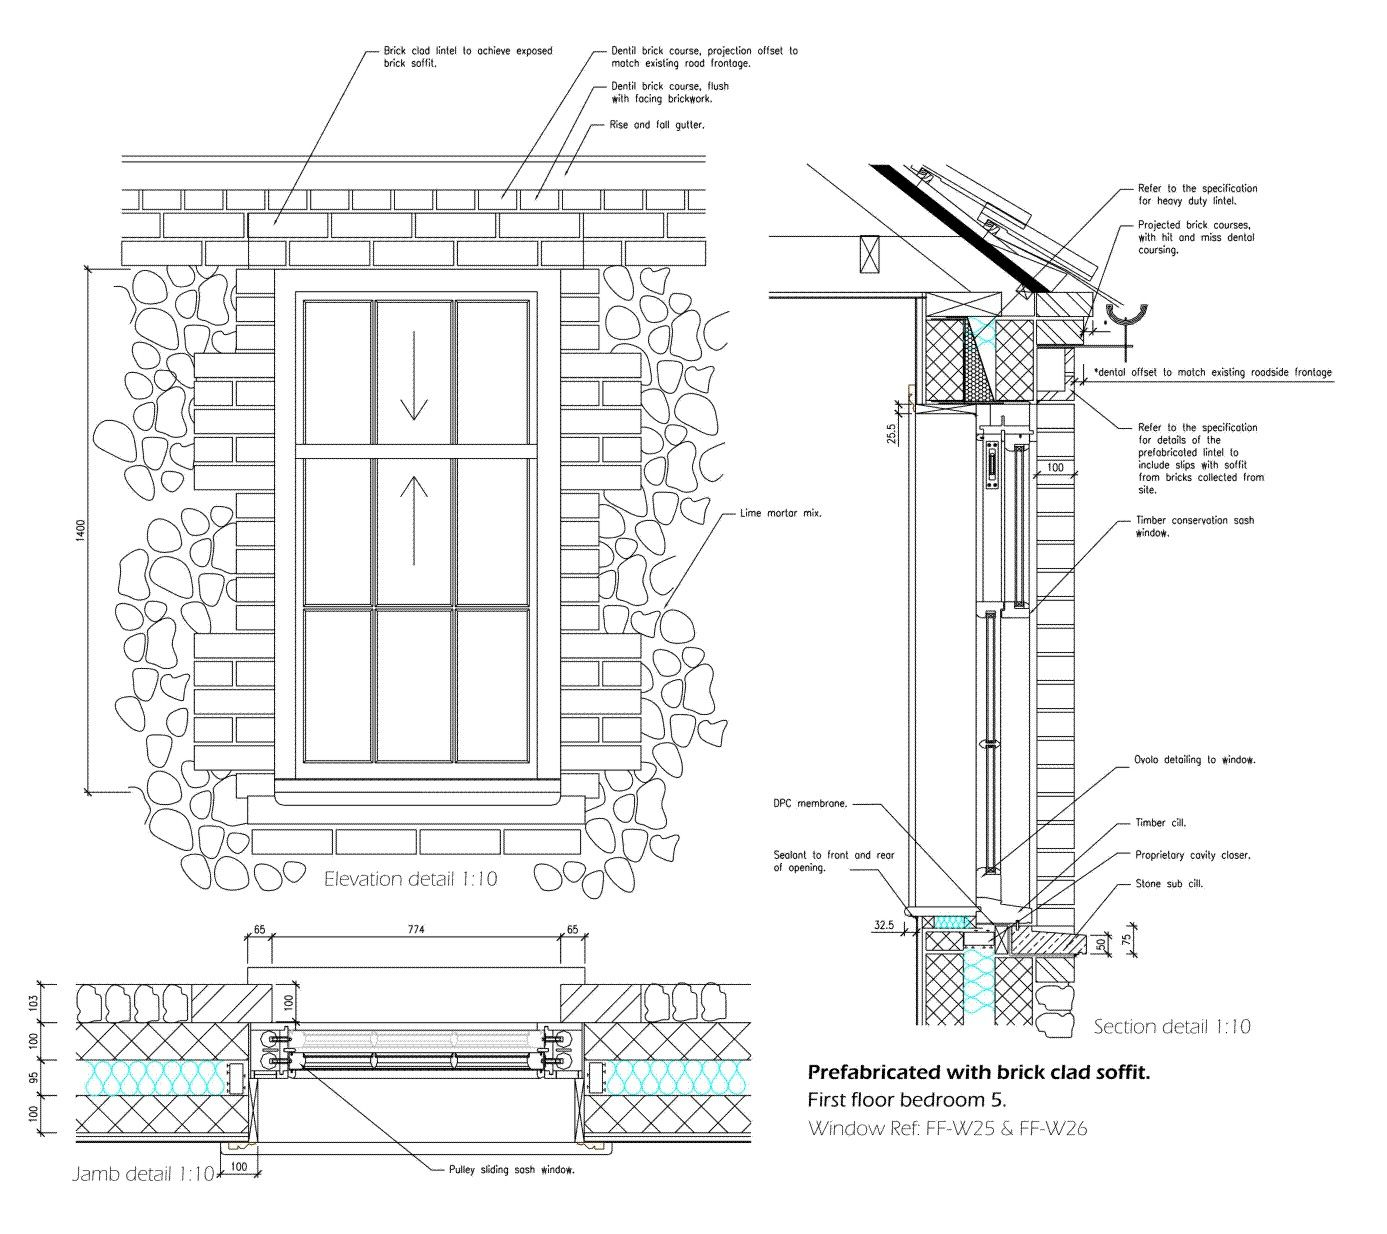 1387 1234 flint pinterest detailed drawings for Section window design